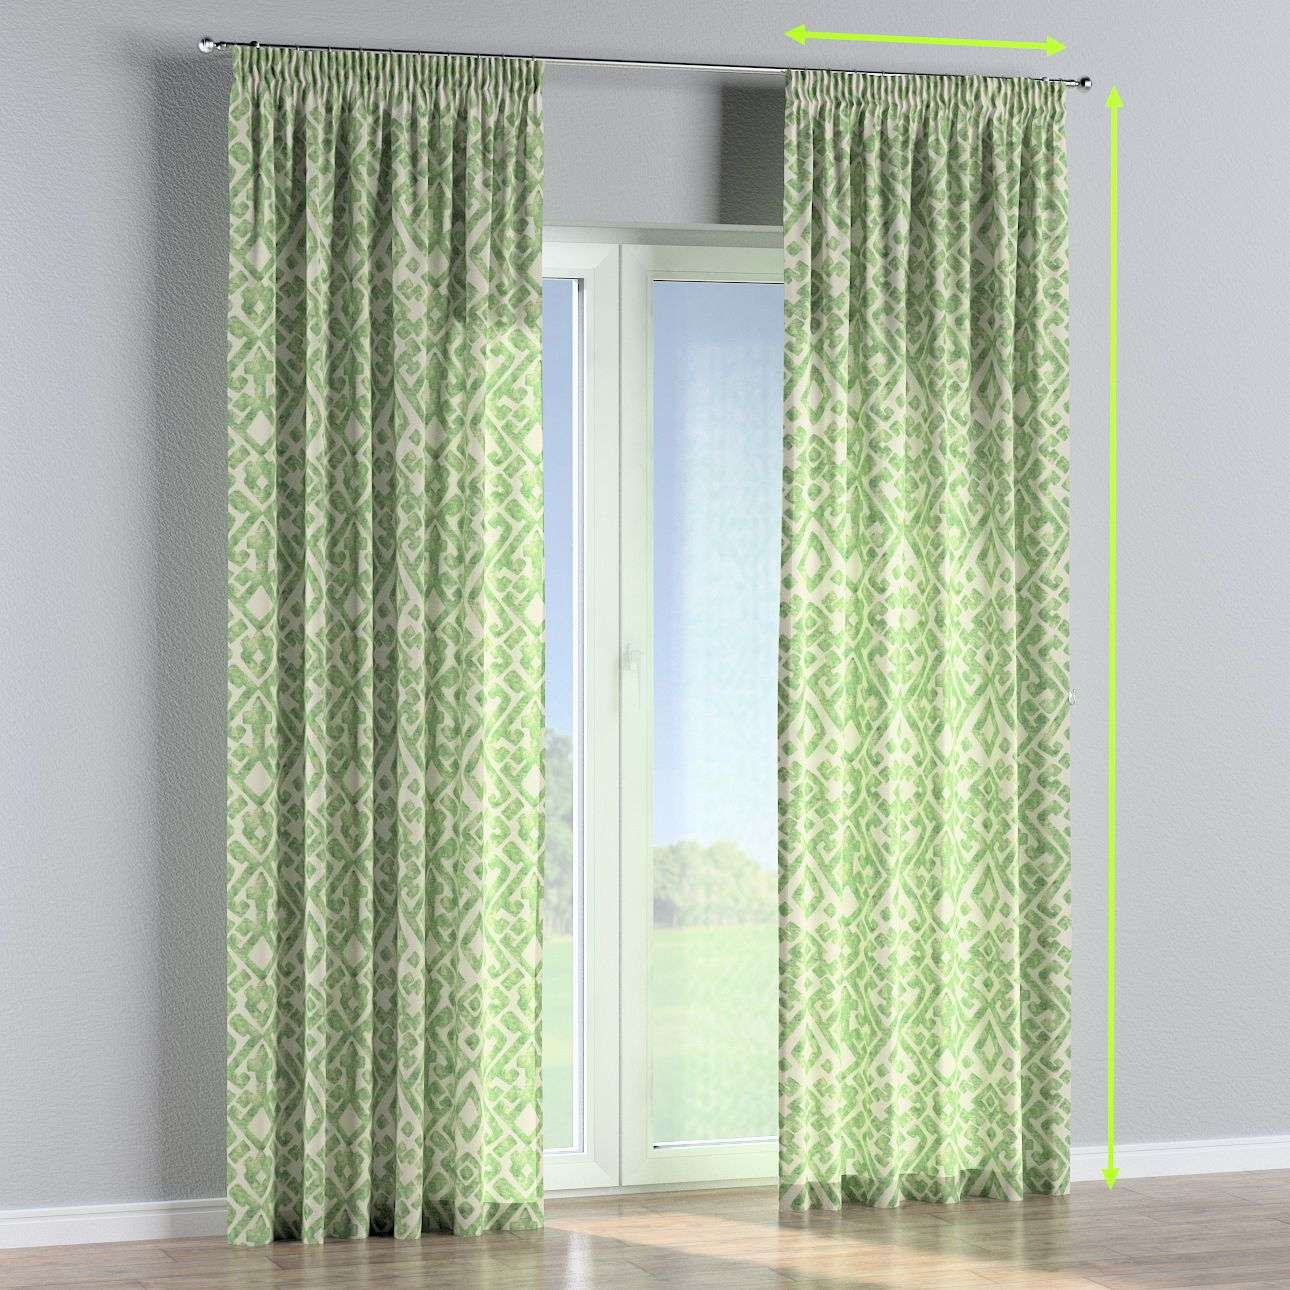 Pencil pleat curtains in collection Urban Jungle, fabric: 141-62